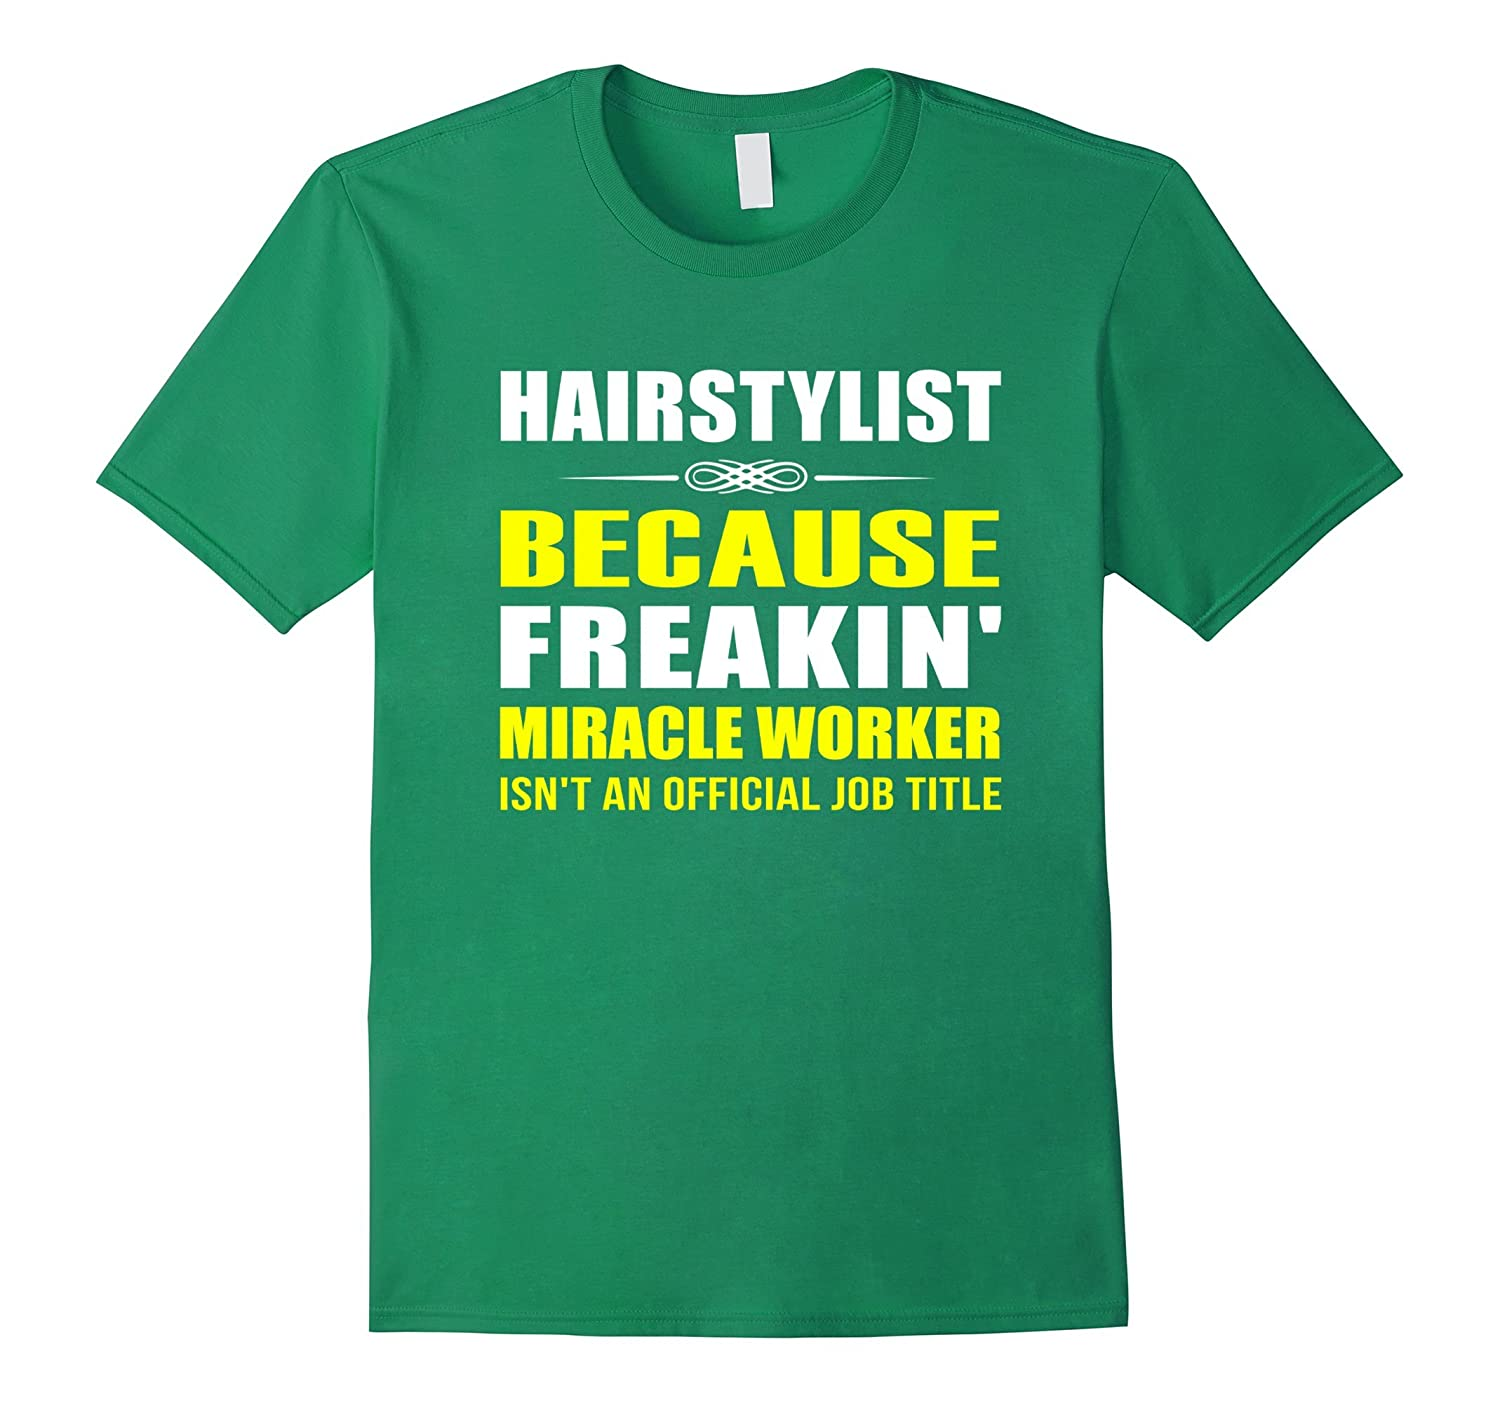 Hairstylist Because Freakin Miracle Worker Job Title T-Shirt